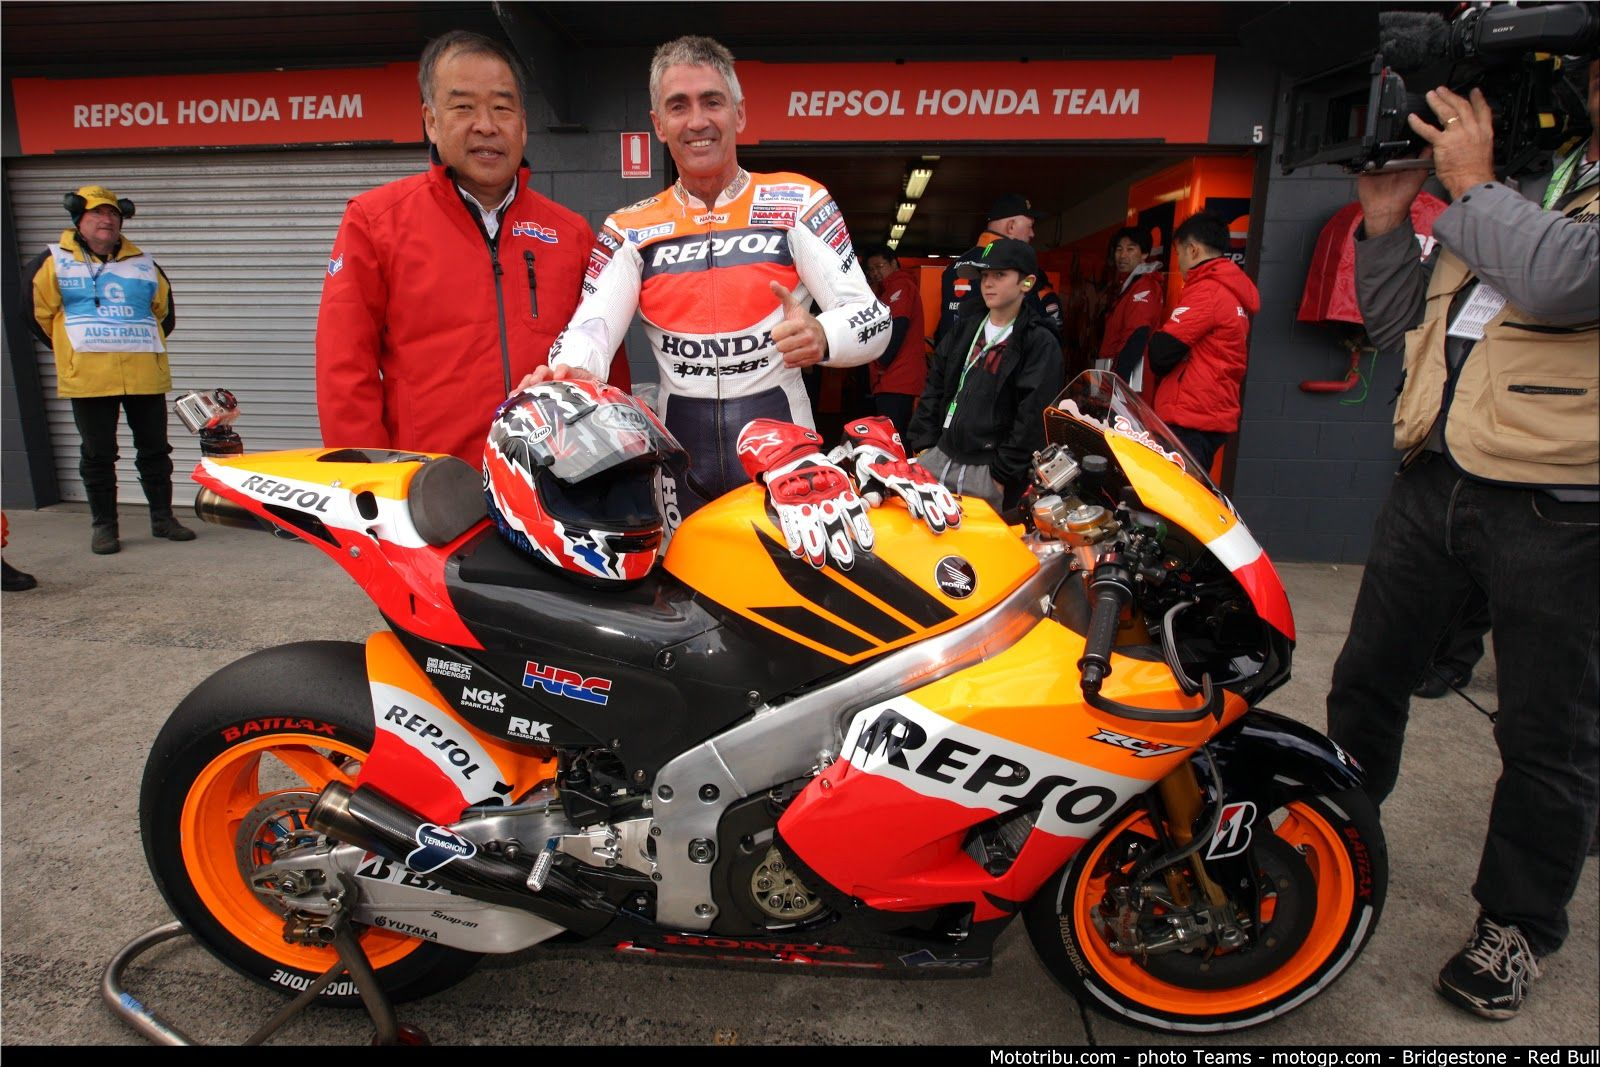 I bet he could hop on now and be near the front of the pack Mick Doohan @ Phillip Island 2012 - via Racing Cafe